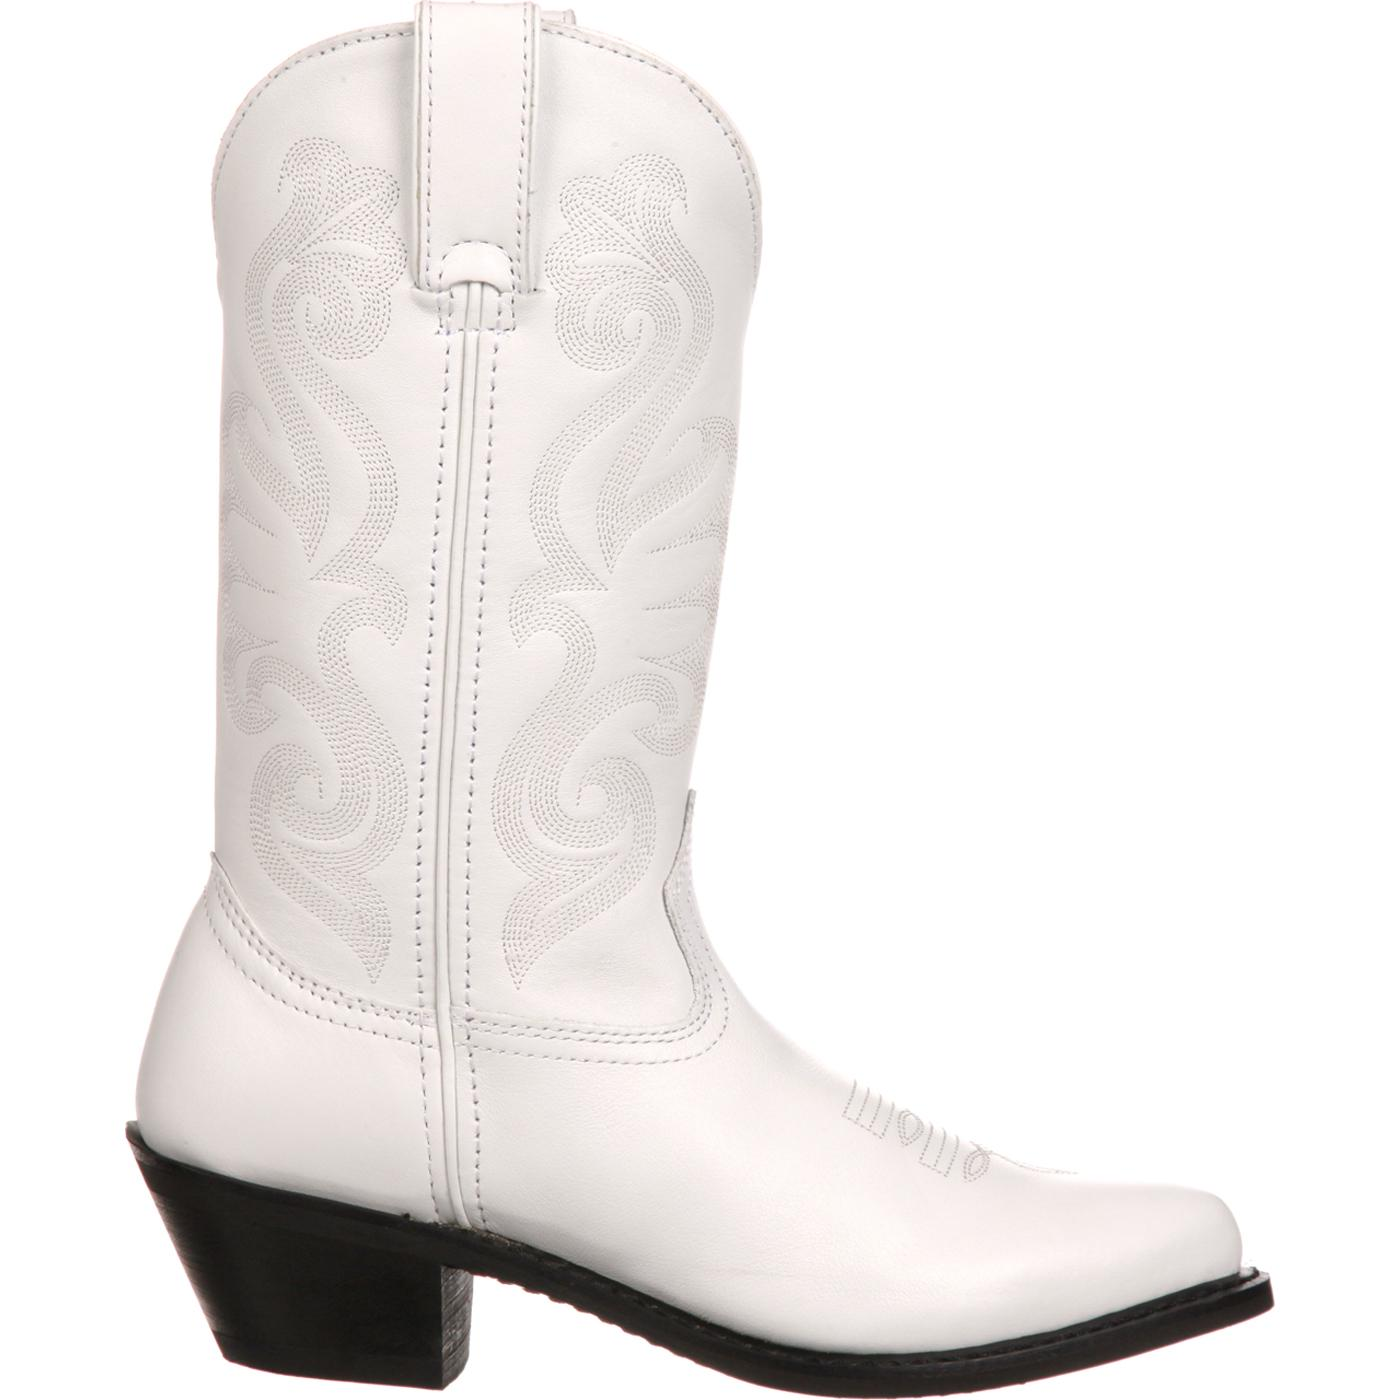 Durango Womens White Leather Western Boot Large